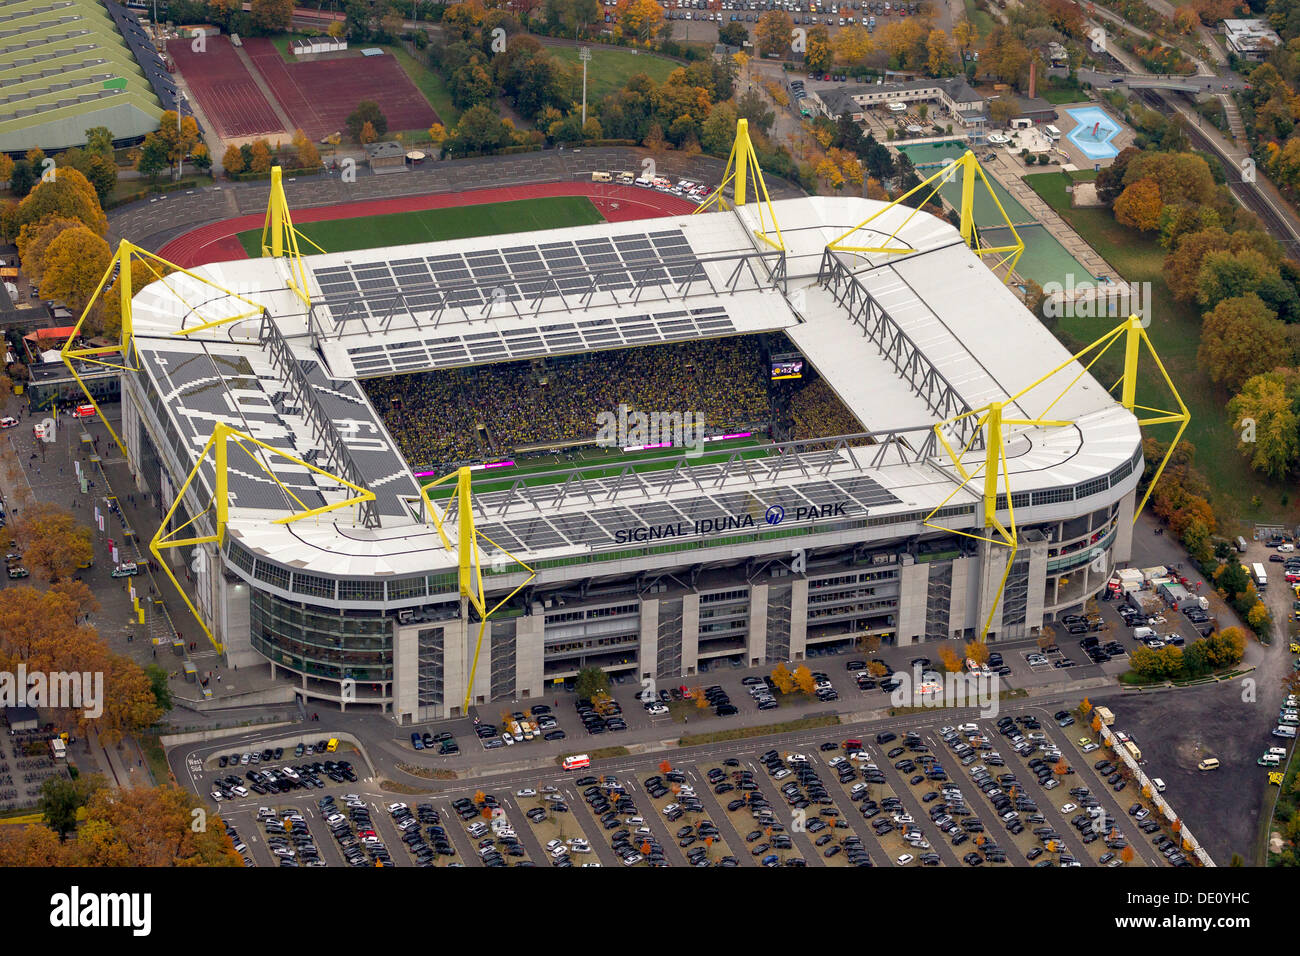 aerial view signal iduna park stadium dortmund ruhr region north stock photo royalty free. Black Bedroom Furniture Sets. Home Design Ideas